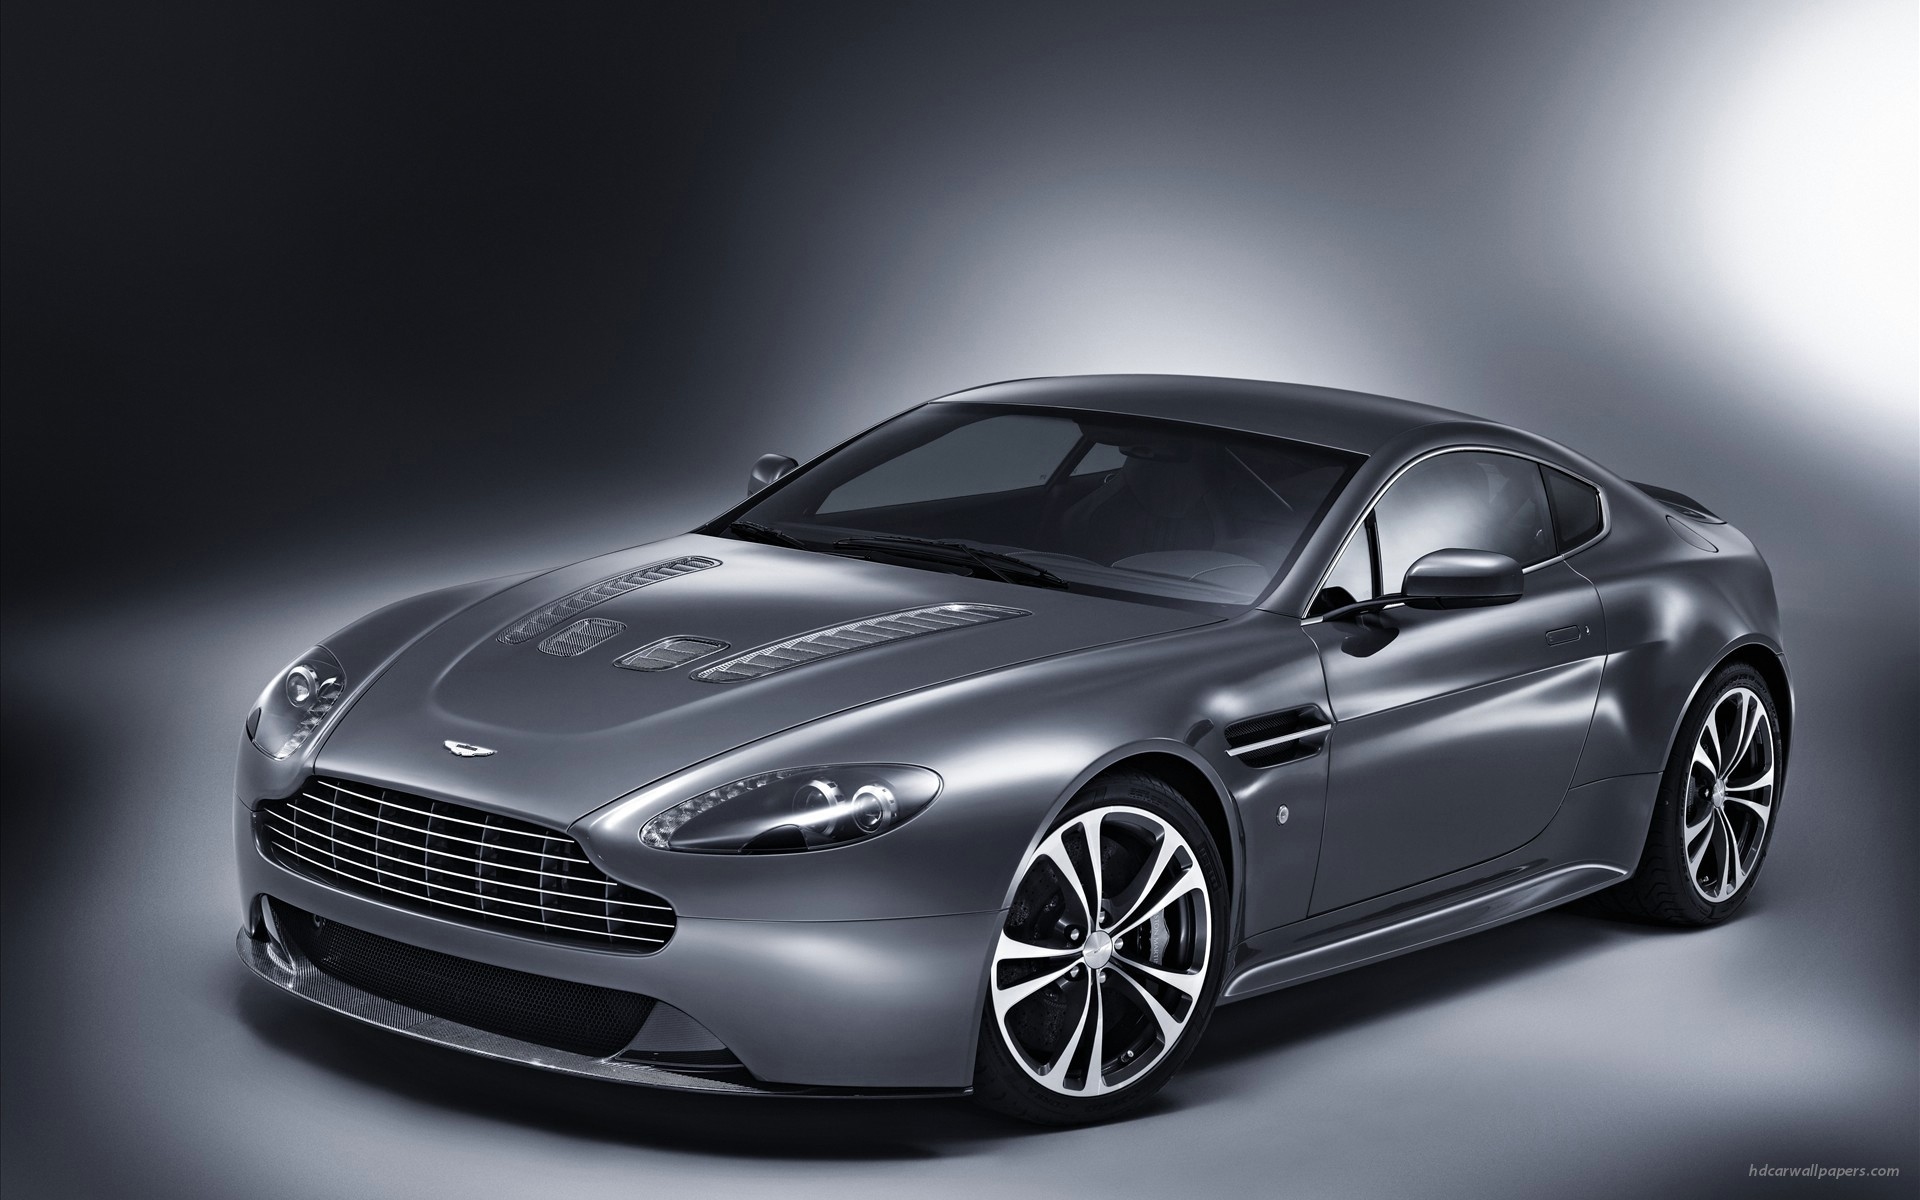 Aston Martin V12 Vantage 2 Wallpapers HD Wallpapers 1920x1200